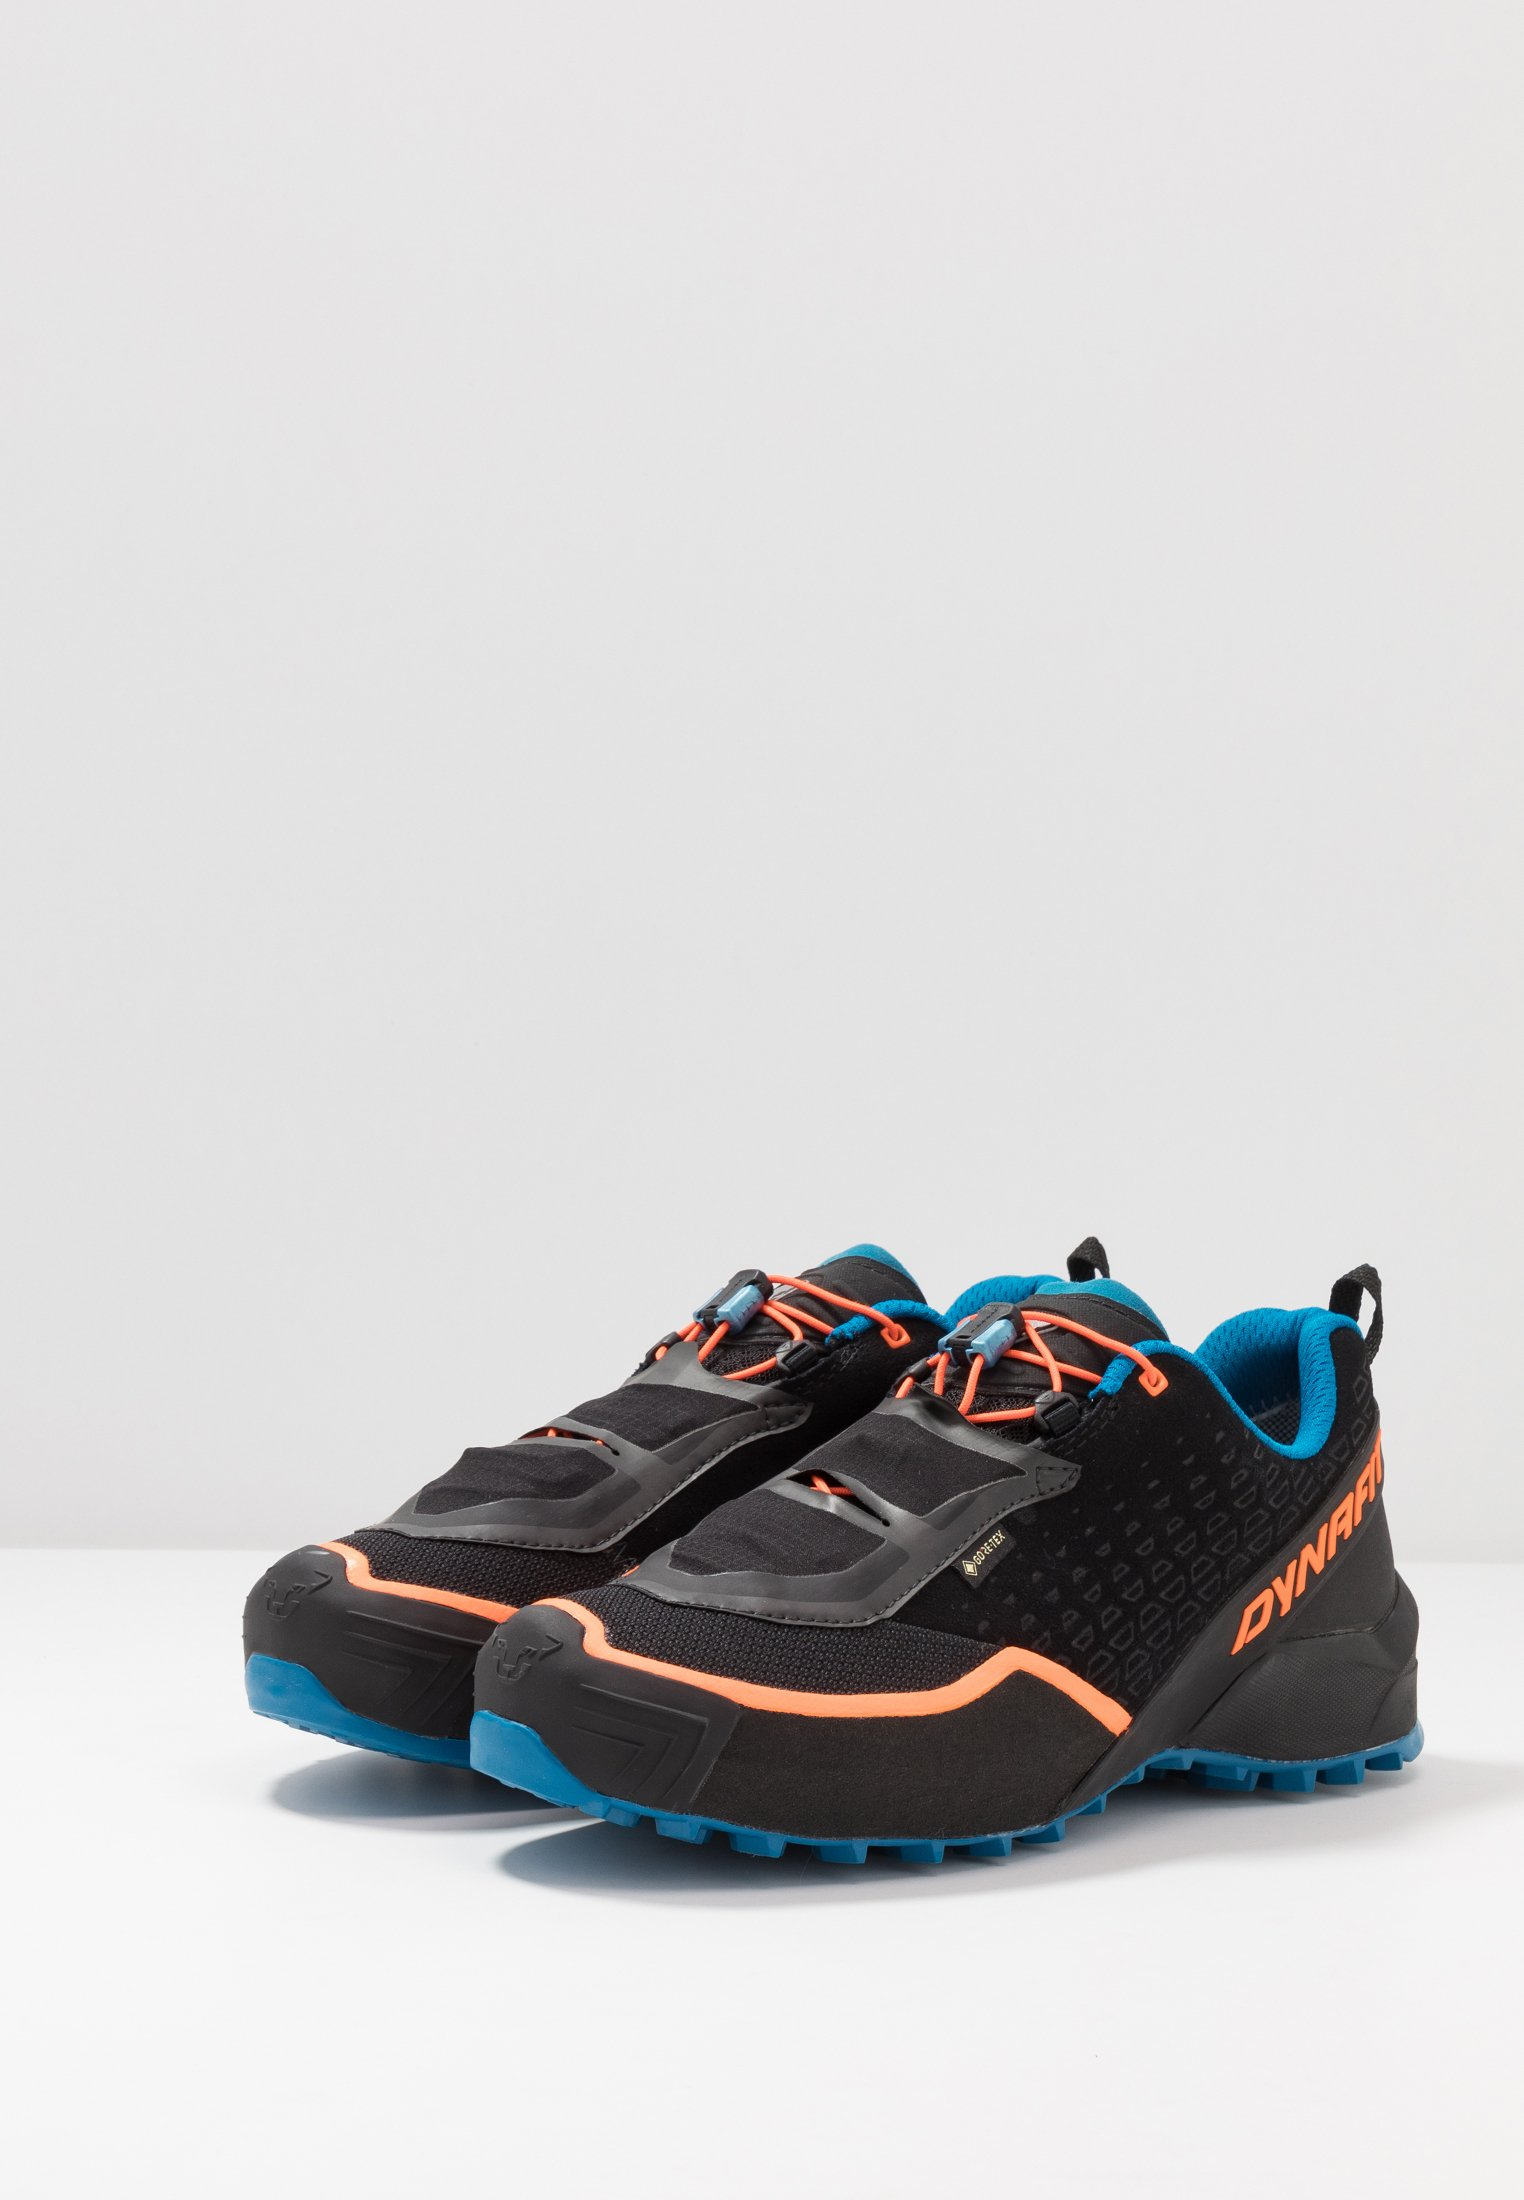 Dynafit Speed Mtn Gtx - Scarpe Da Trail Running Black/mykonos Blue 3EMC9qU